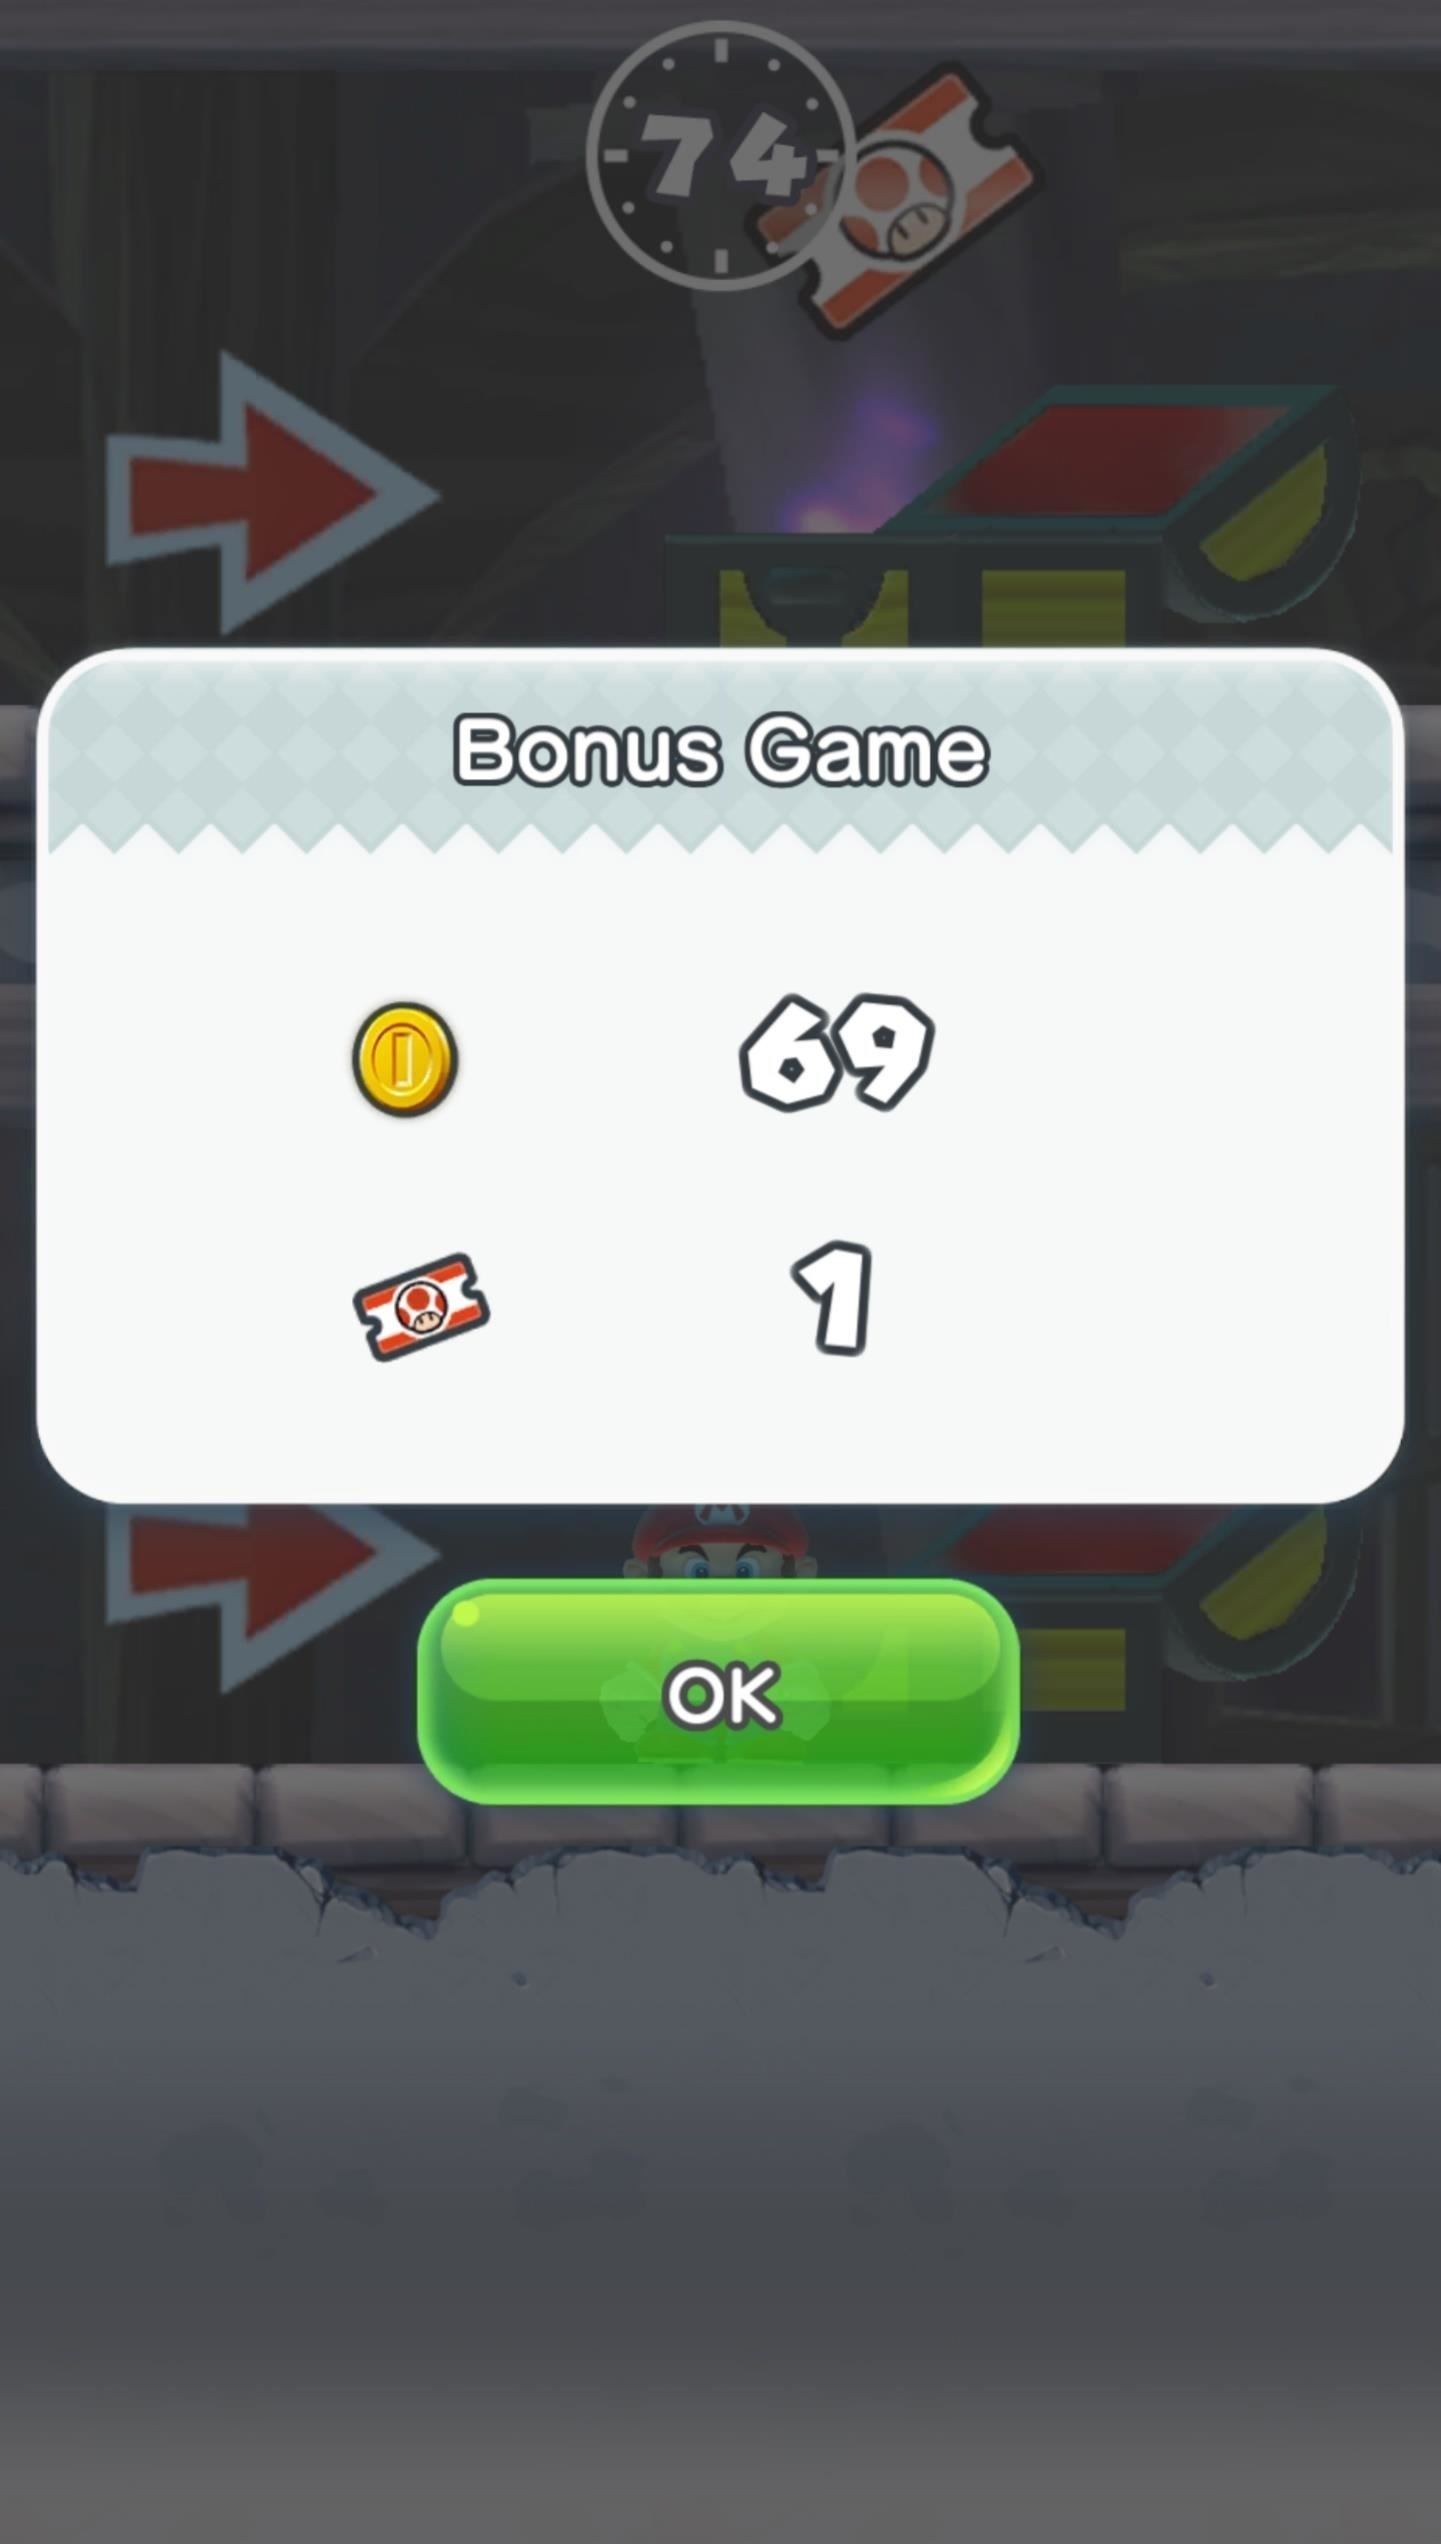 Super Mario Run 101: How to Earn More Toad Rally Tickets